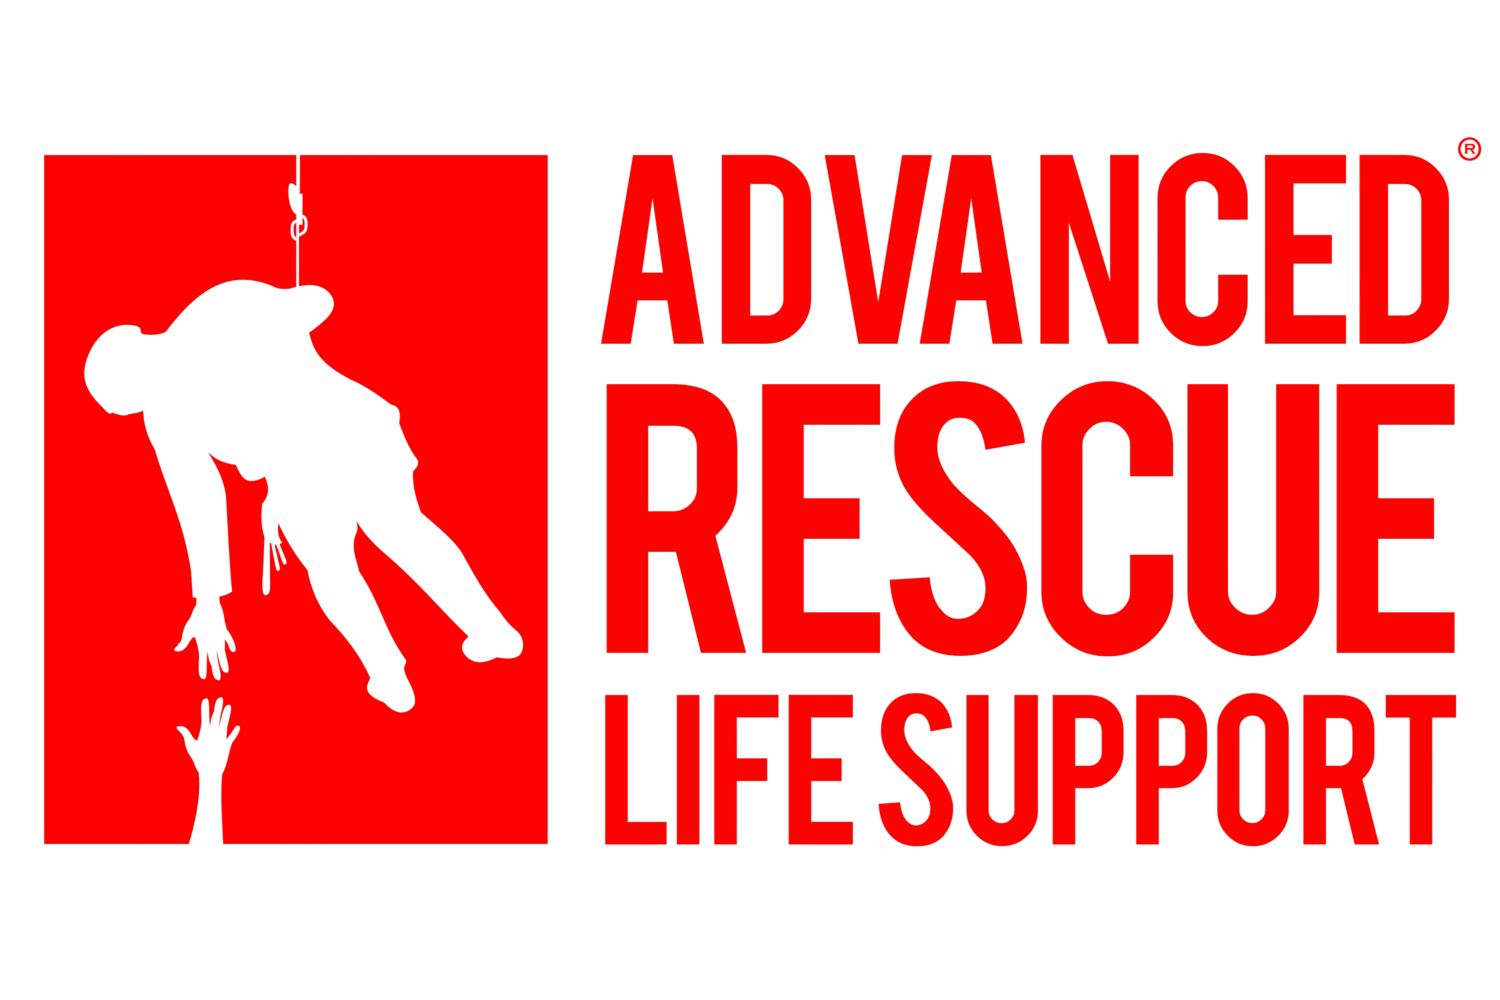 Advanced Rescue Life Support